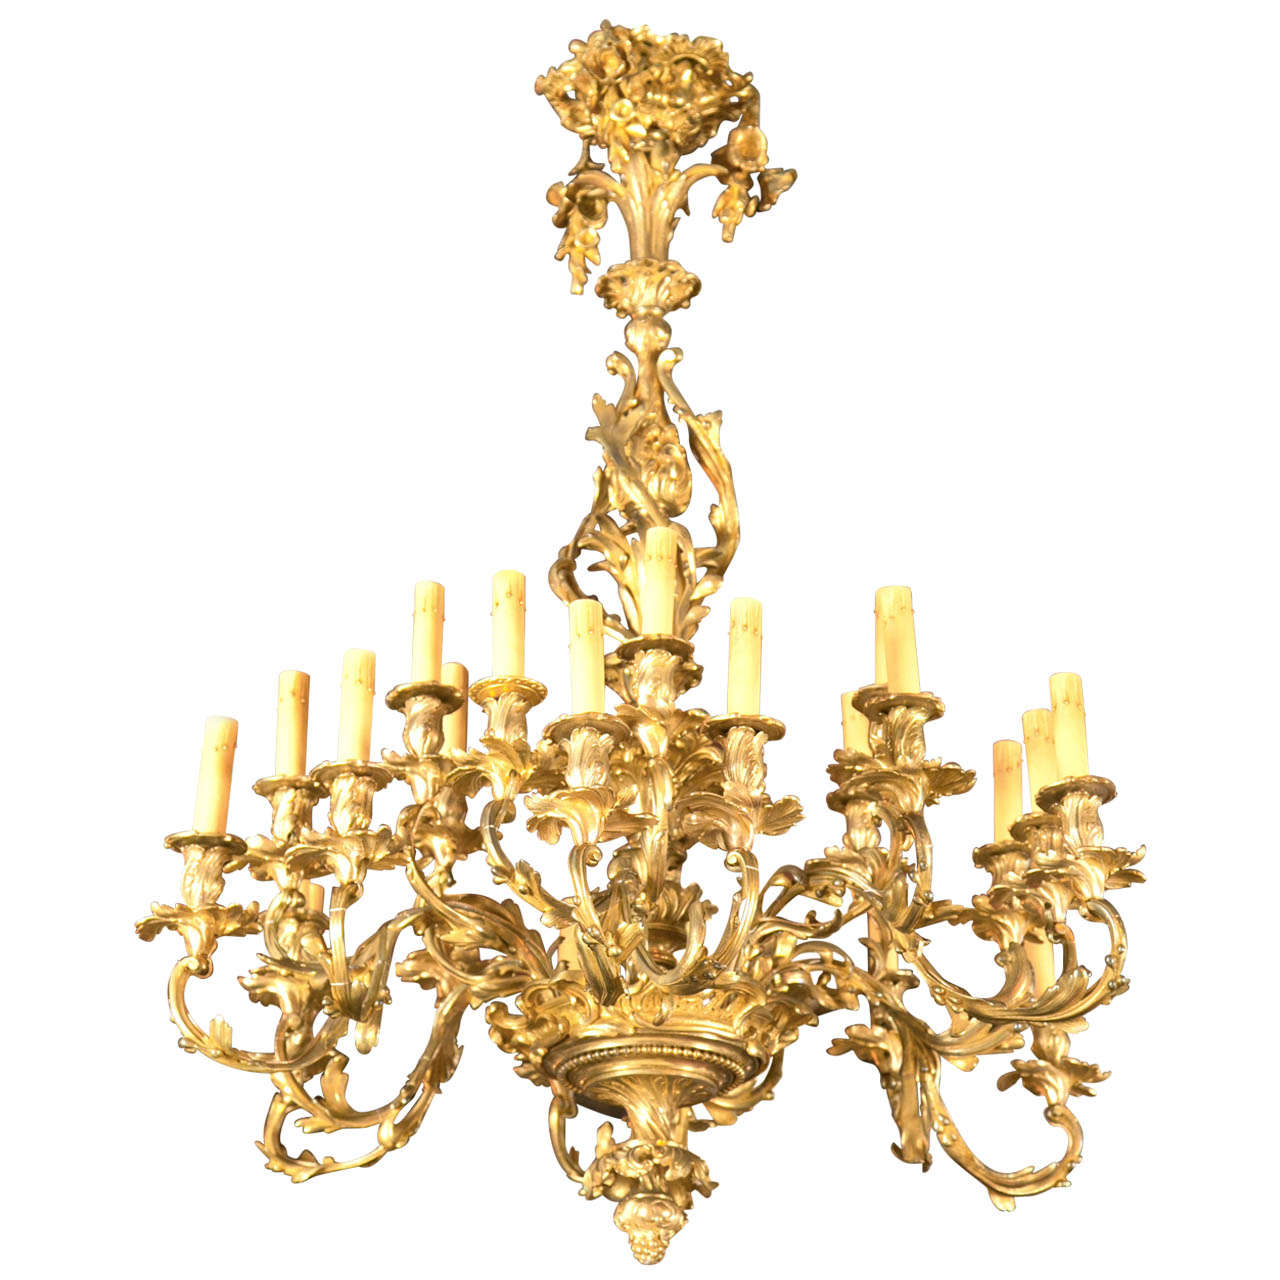 Antique bronze 24 light rococo chandelier at 1stdibs antique bronze 24 light rococo chandelier 1 arubaitofo Image collections